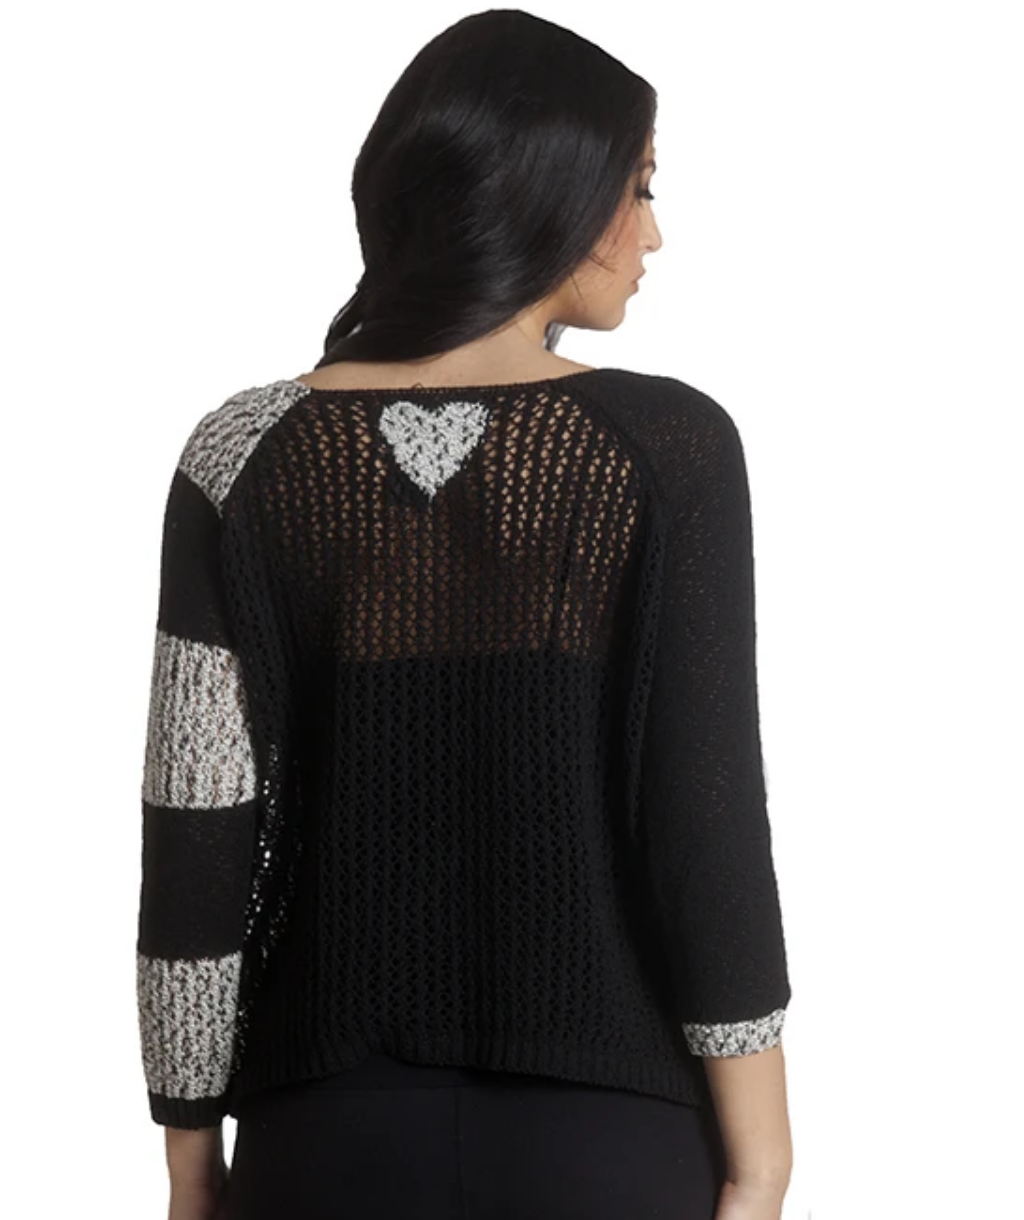 French Kyss Crochet Top - Heart on Back